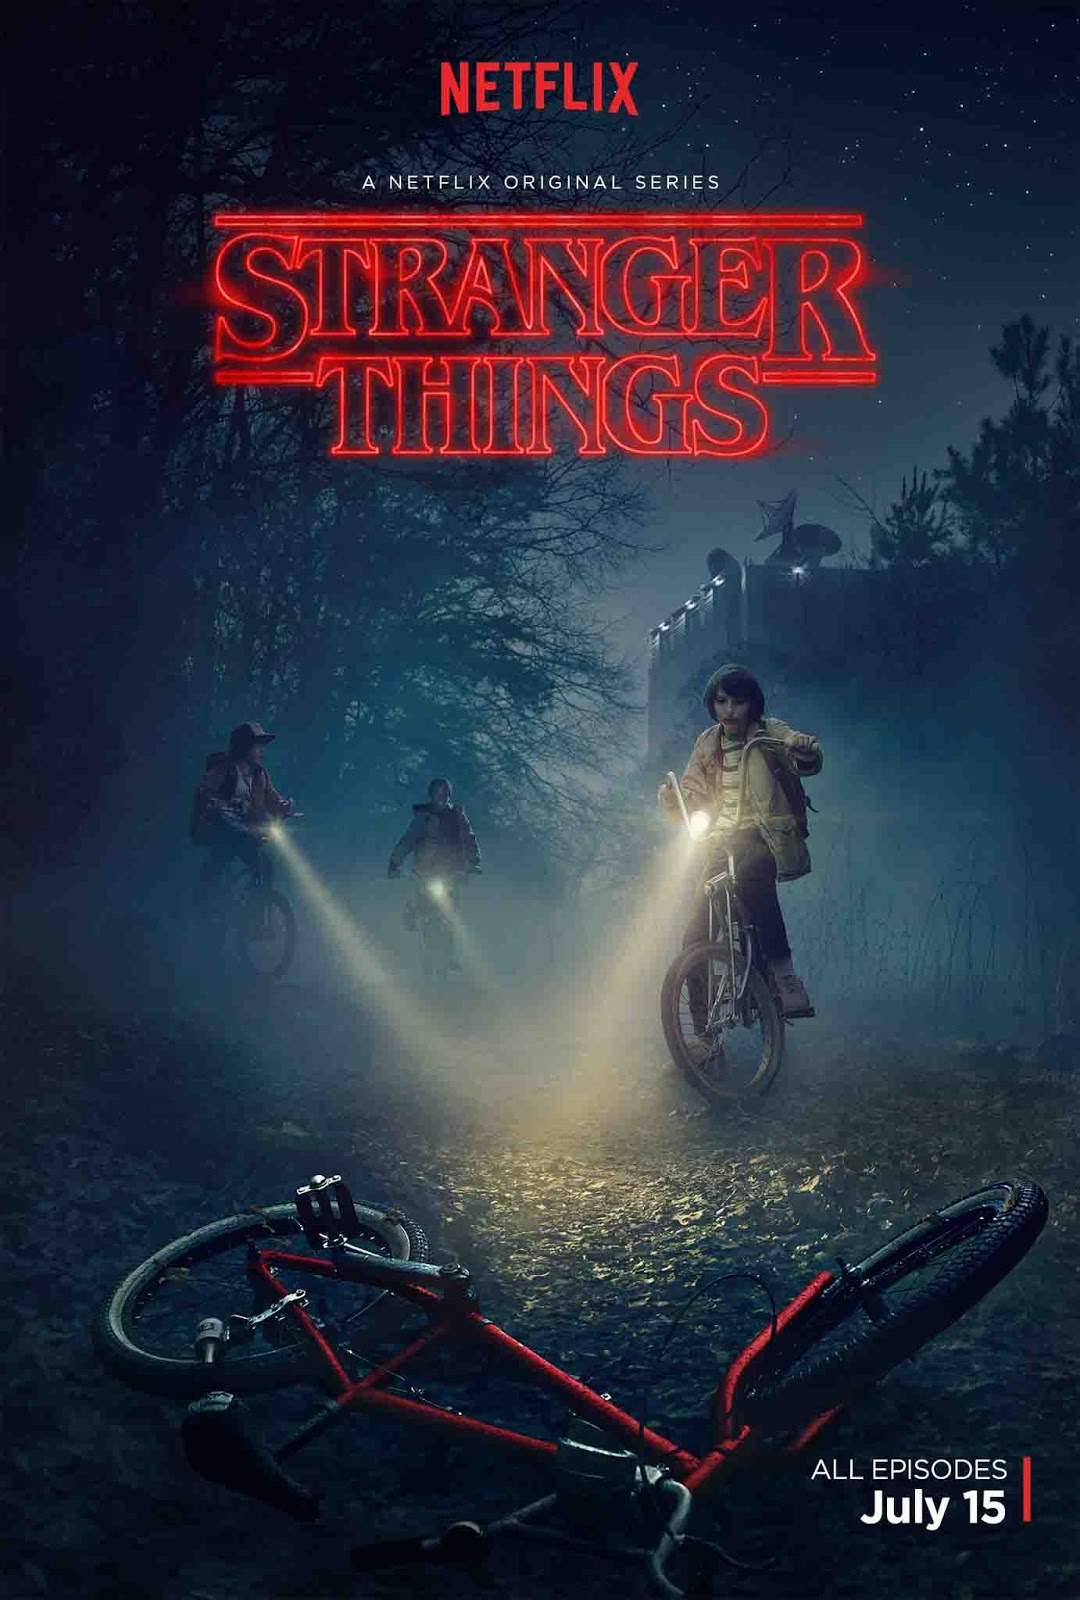 Stranger Things 1ª Temporada Torrent - WEBRip 720p/1080p/4K Dual Áudio